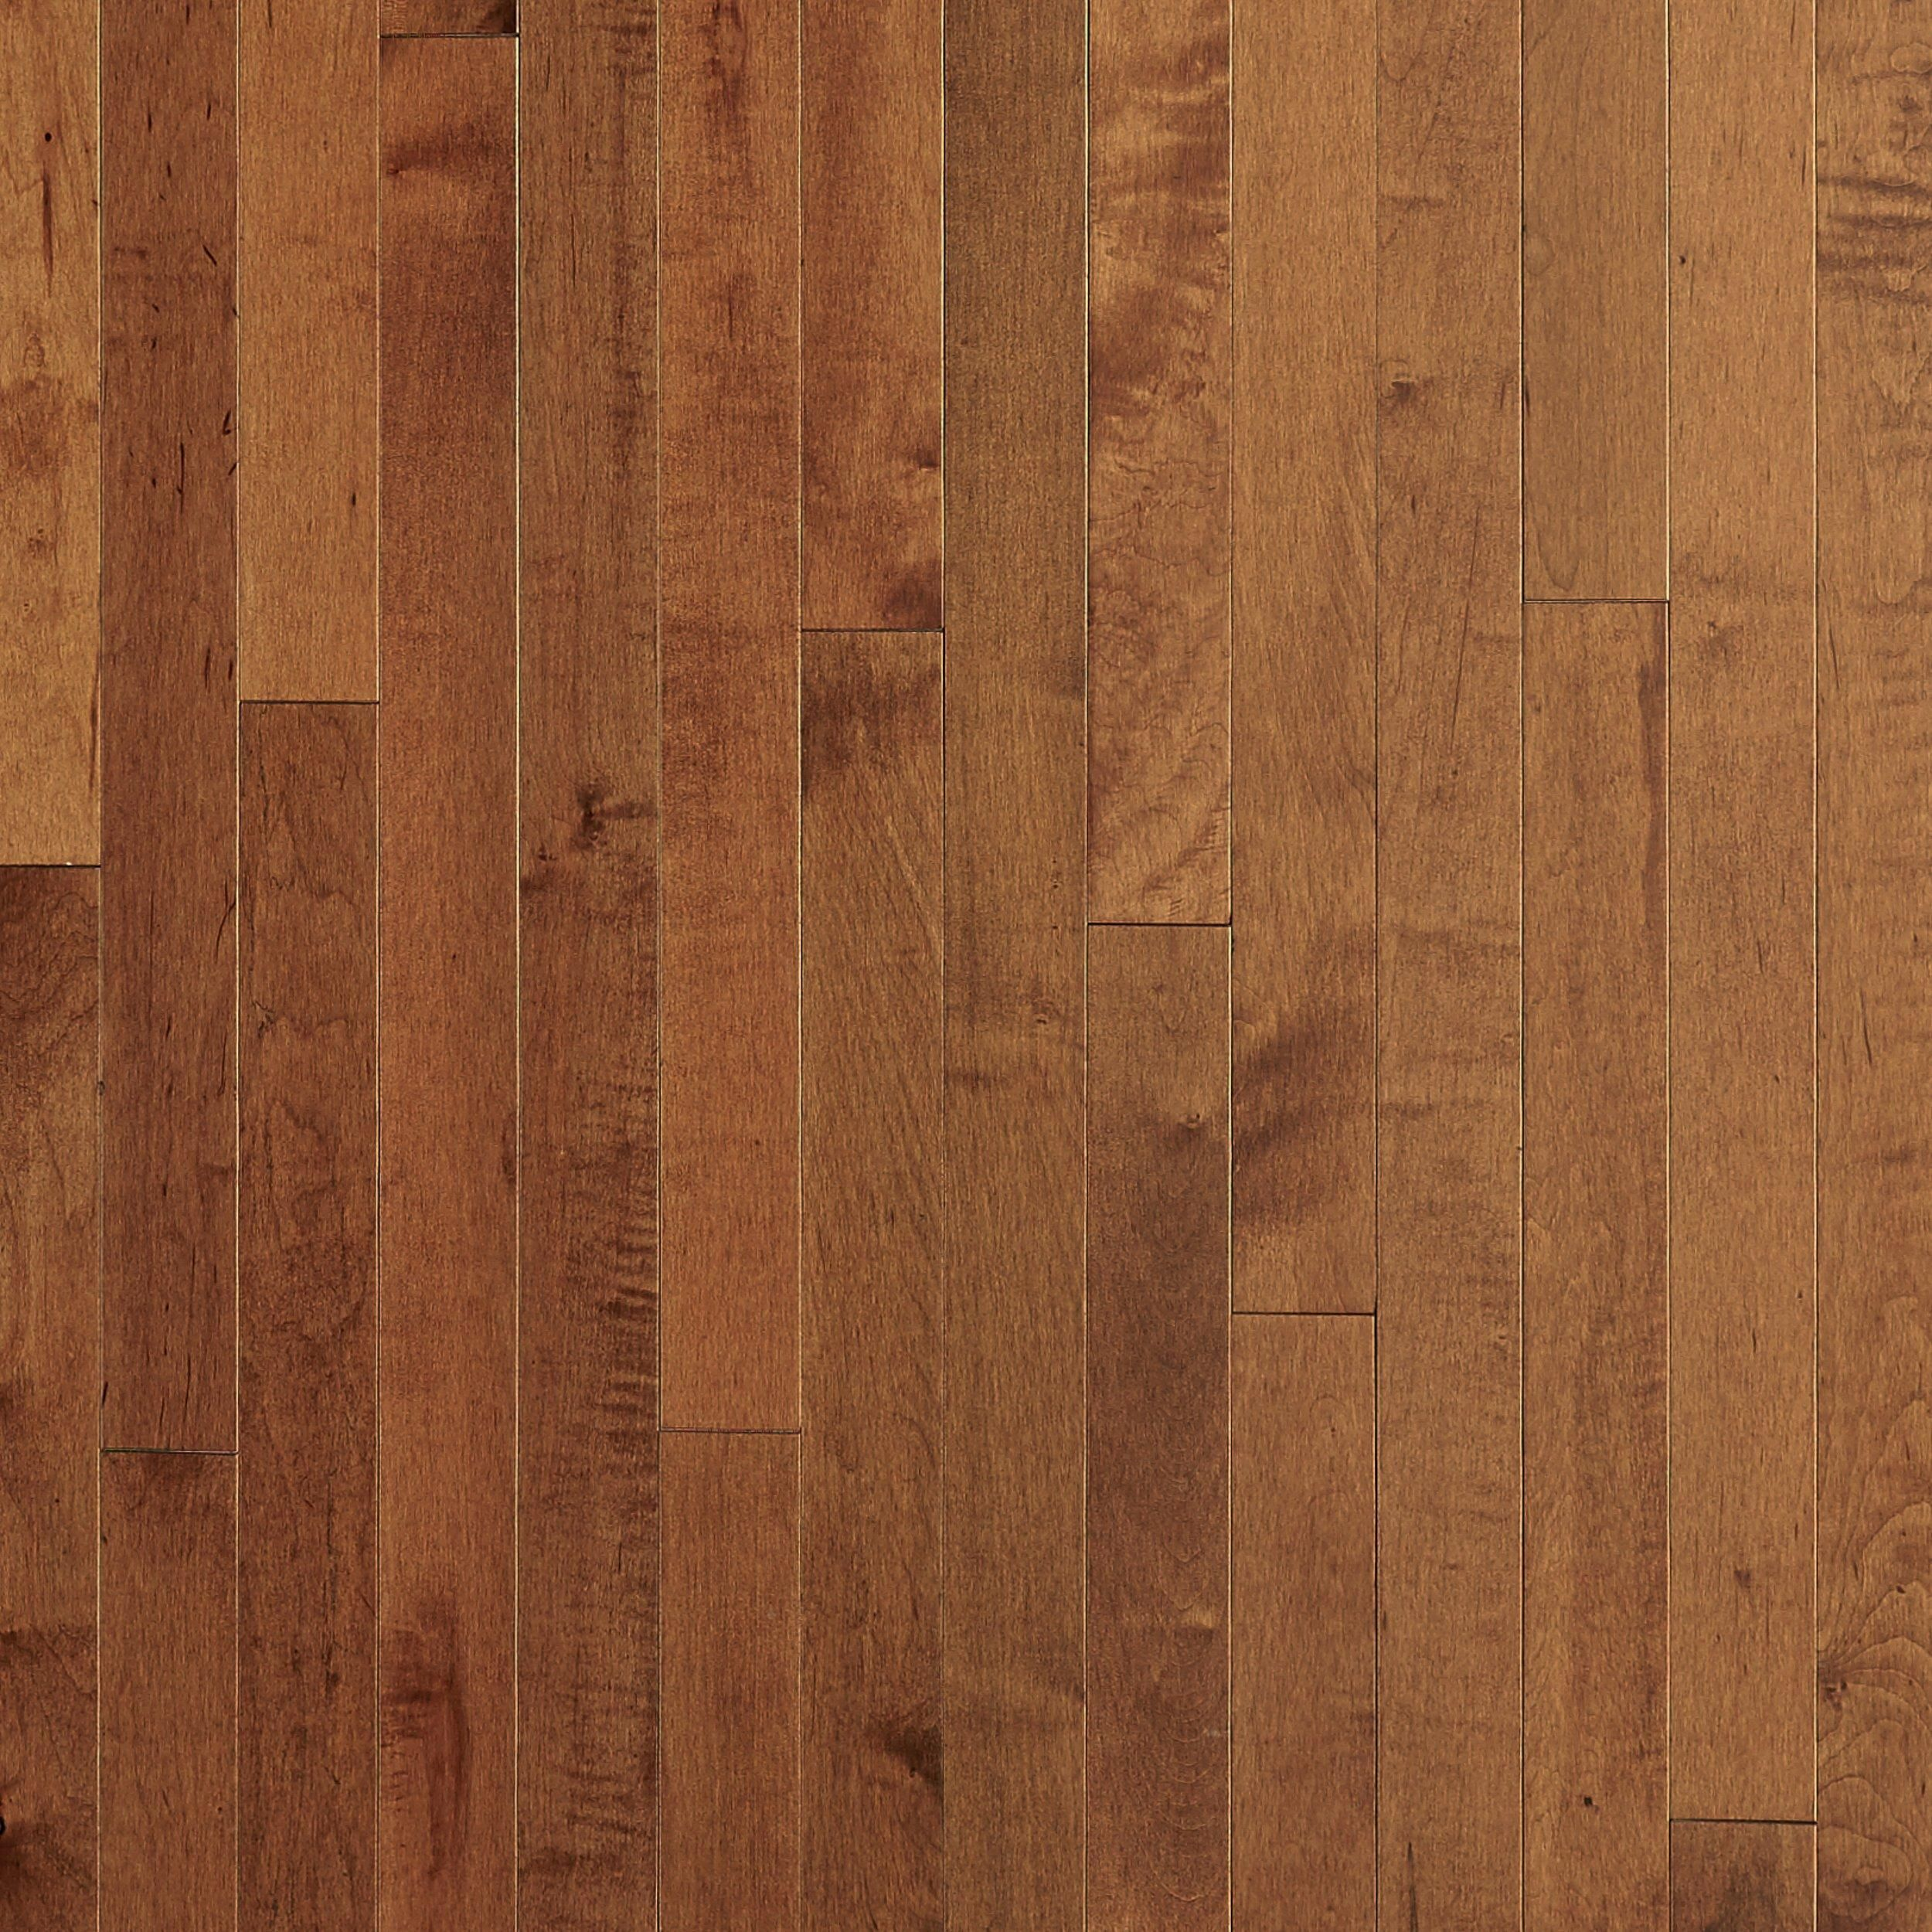 Appalachian Maple Solid Hardwood Floor Decor In 2020 Solid Hardwood Solid Hardwood Floors Old Wood Floors